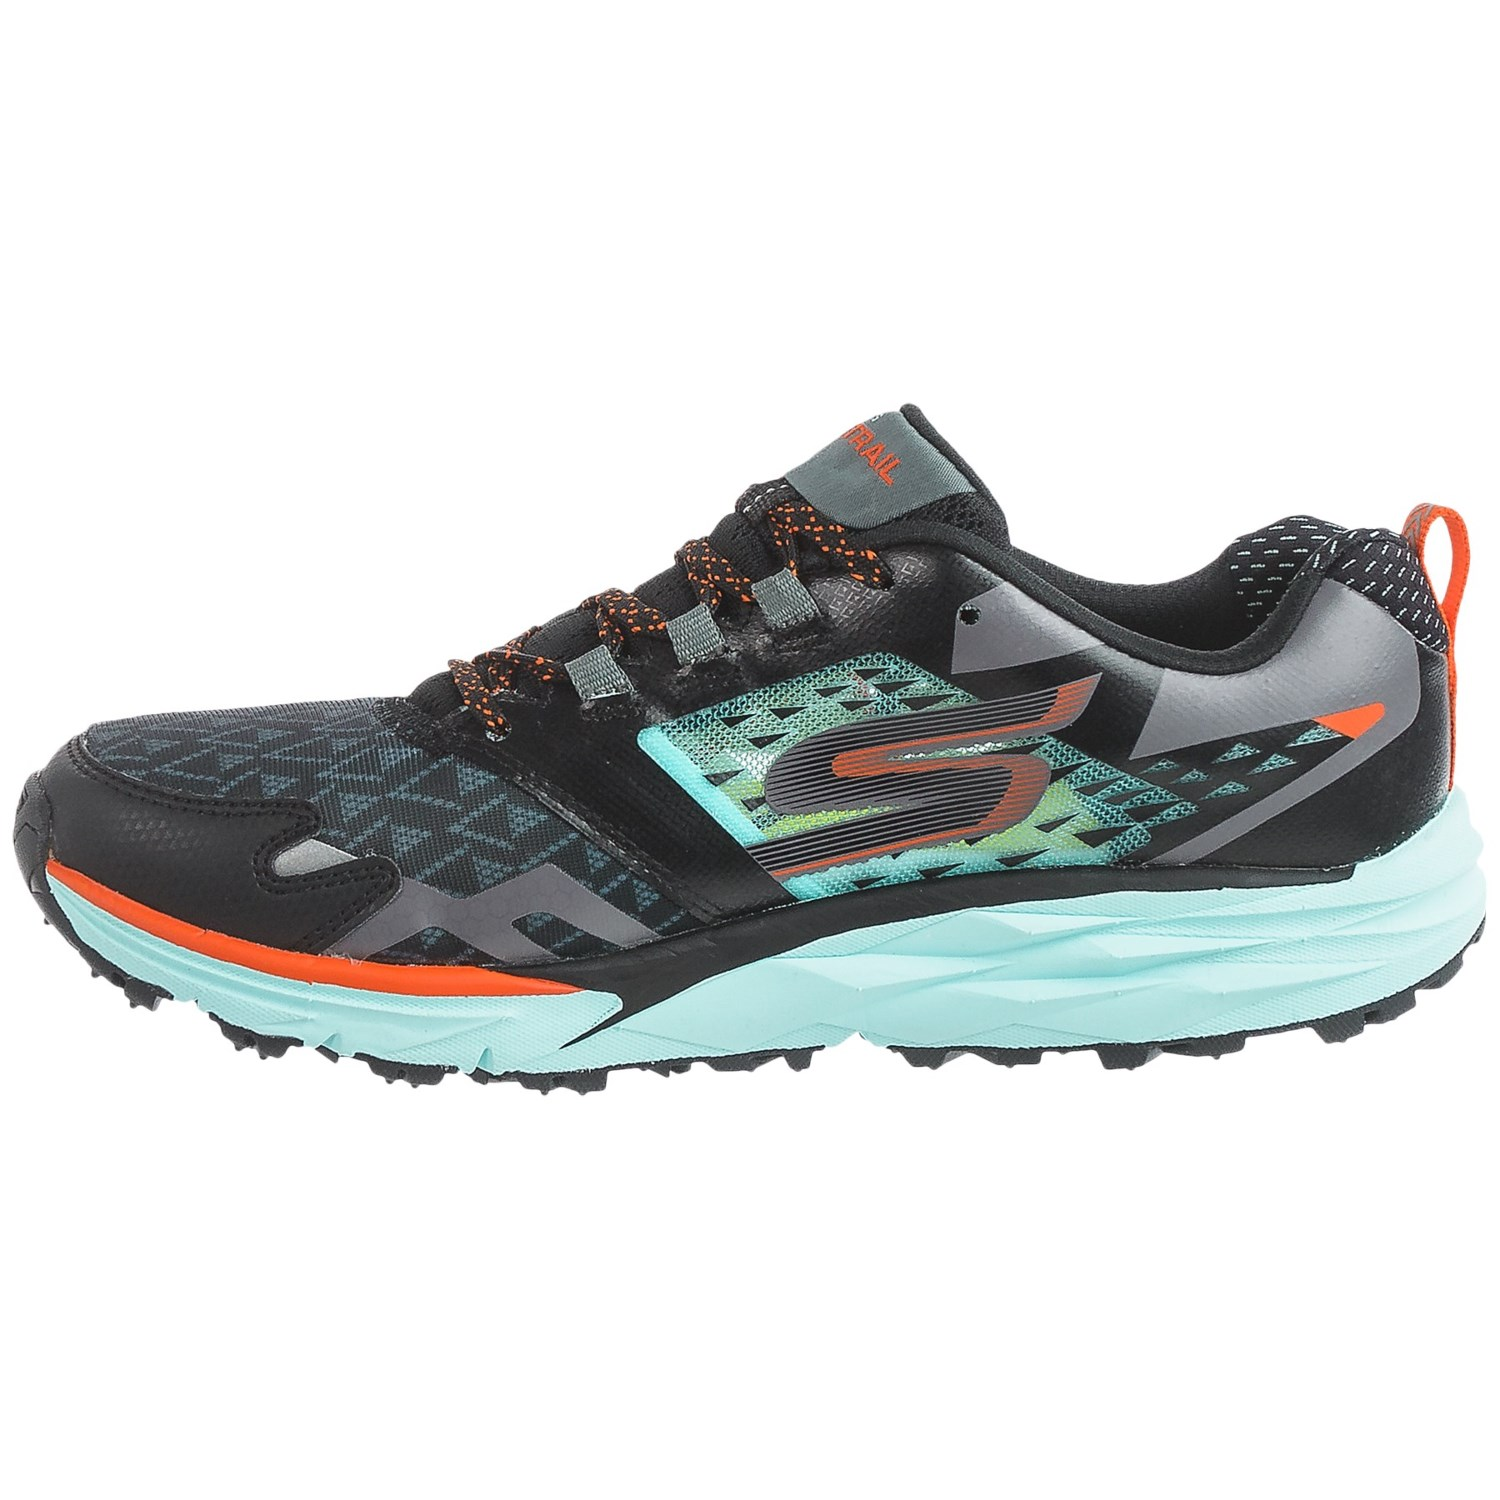 Skechers Gotrail Trail Running Shoes For Women